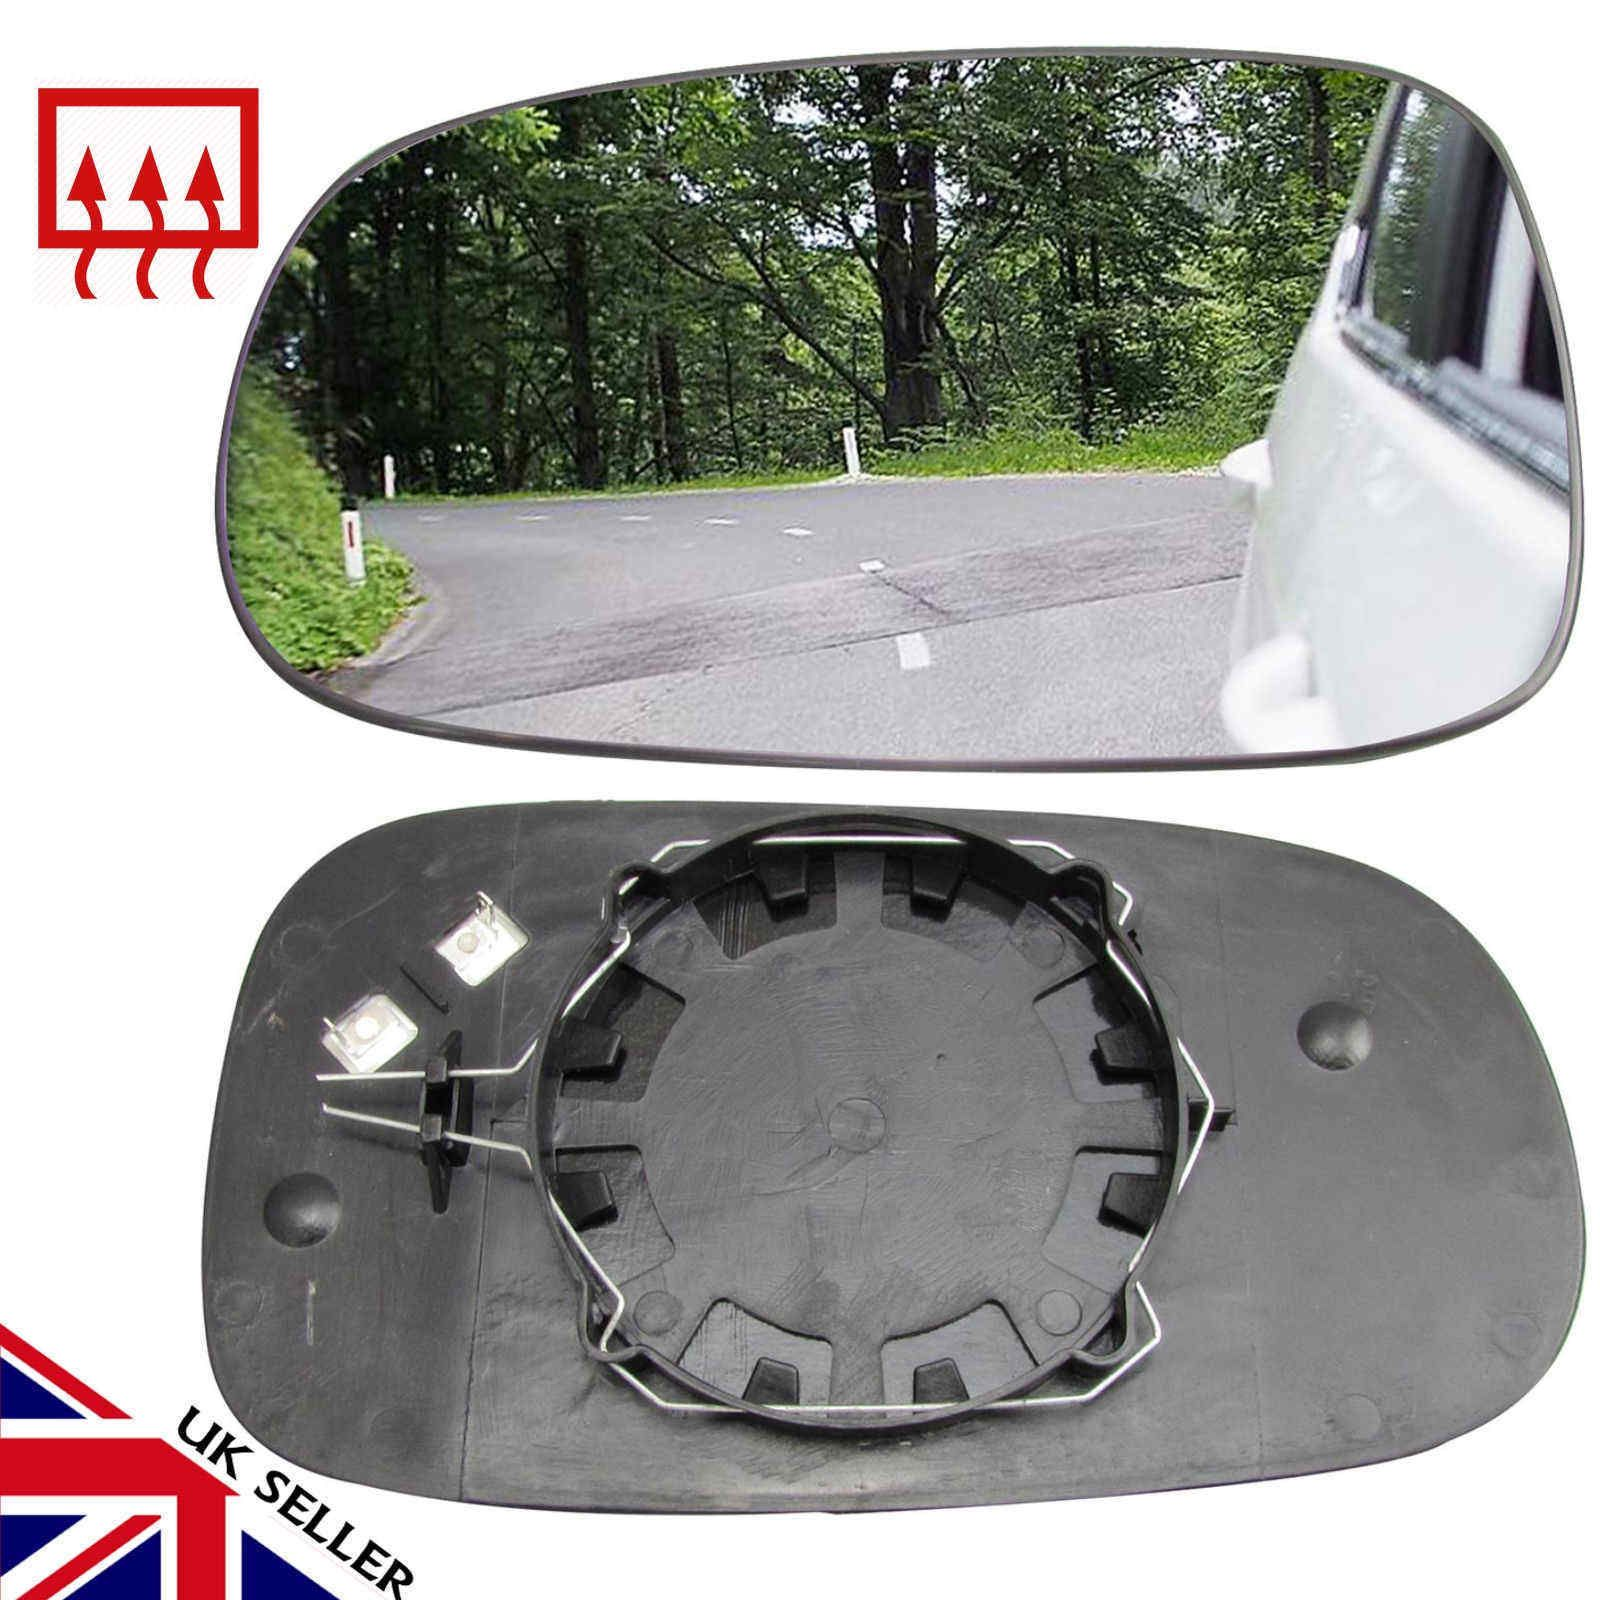 Right Driver side wing mirror glass for BMW 3 series 1998-2005 saloon estate